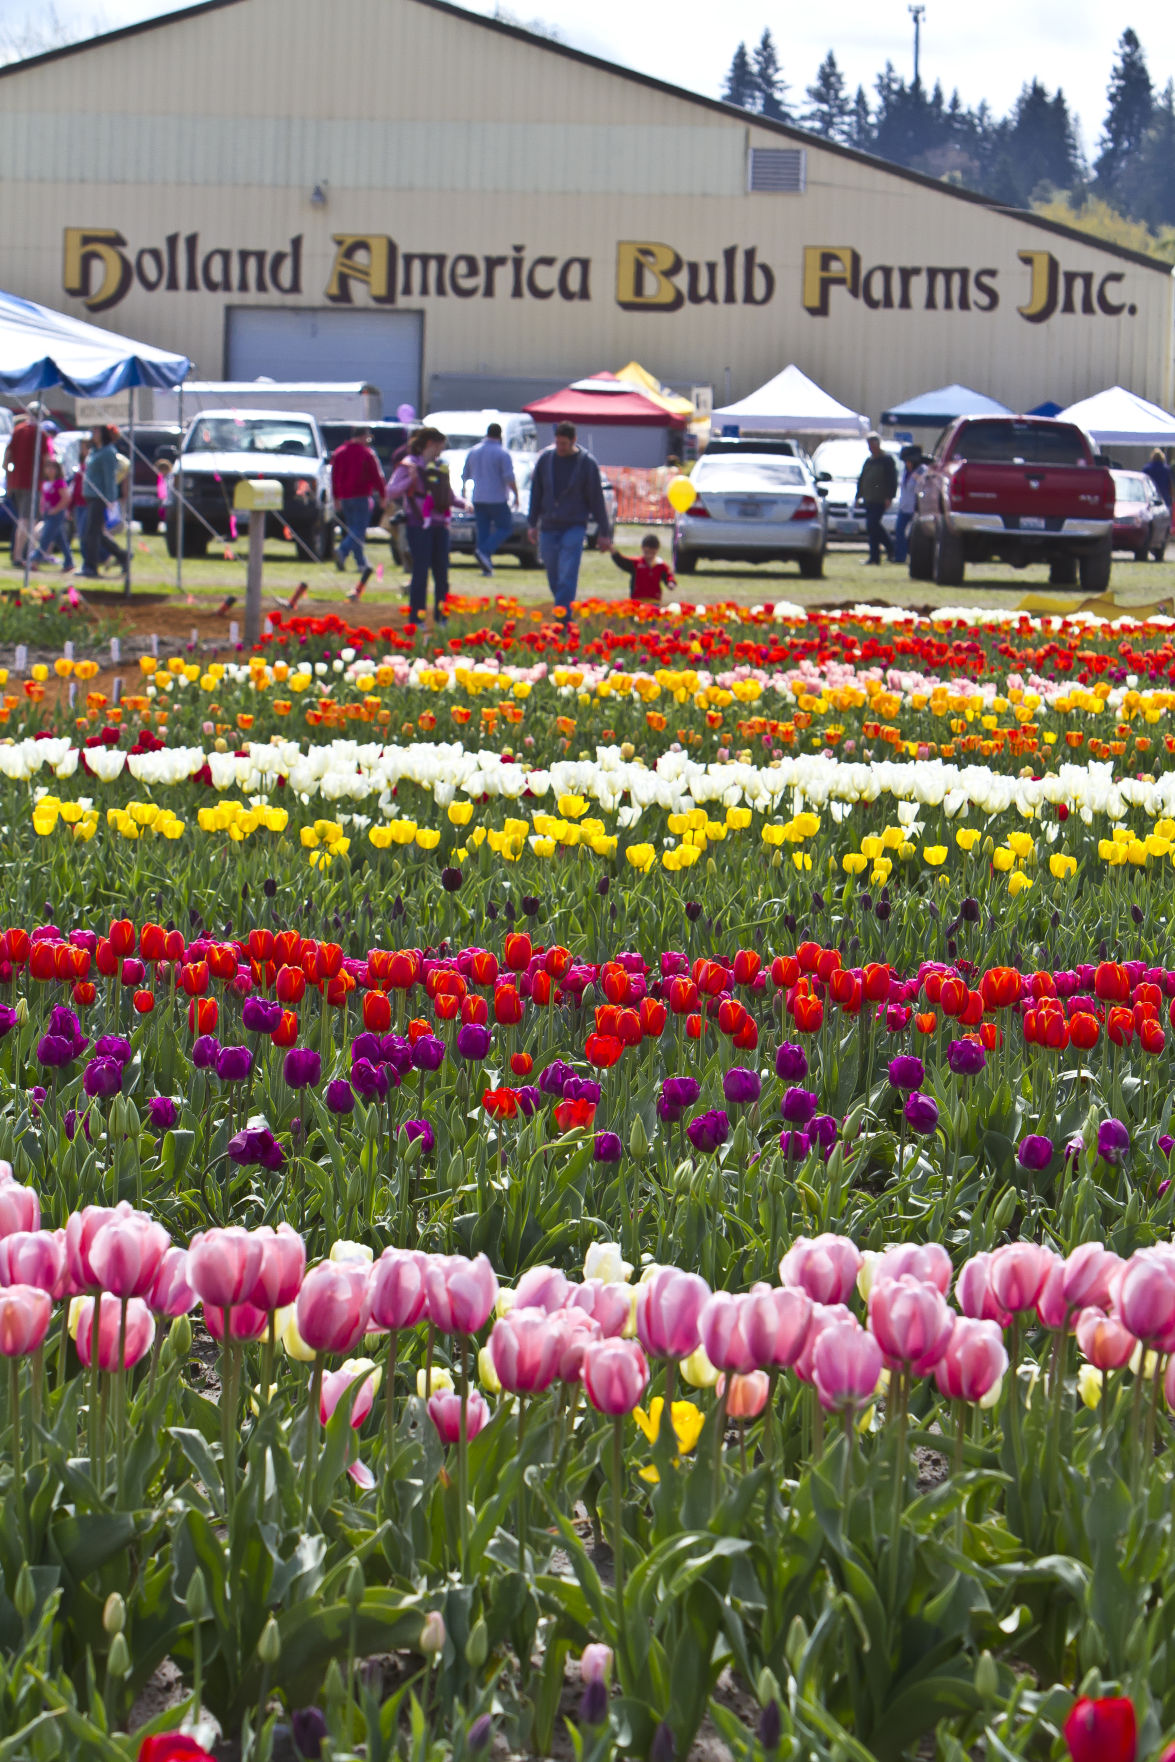 Cancelled this year, the Woodland Tulip Festival is well-worth catching. Smaller and more quaint, this is a fun, smaller-town festival that the family will enjoy. Image Courtesy: The Reflector